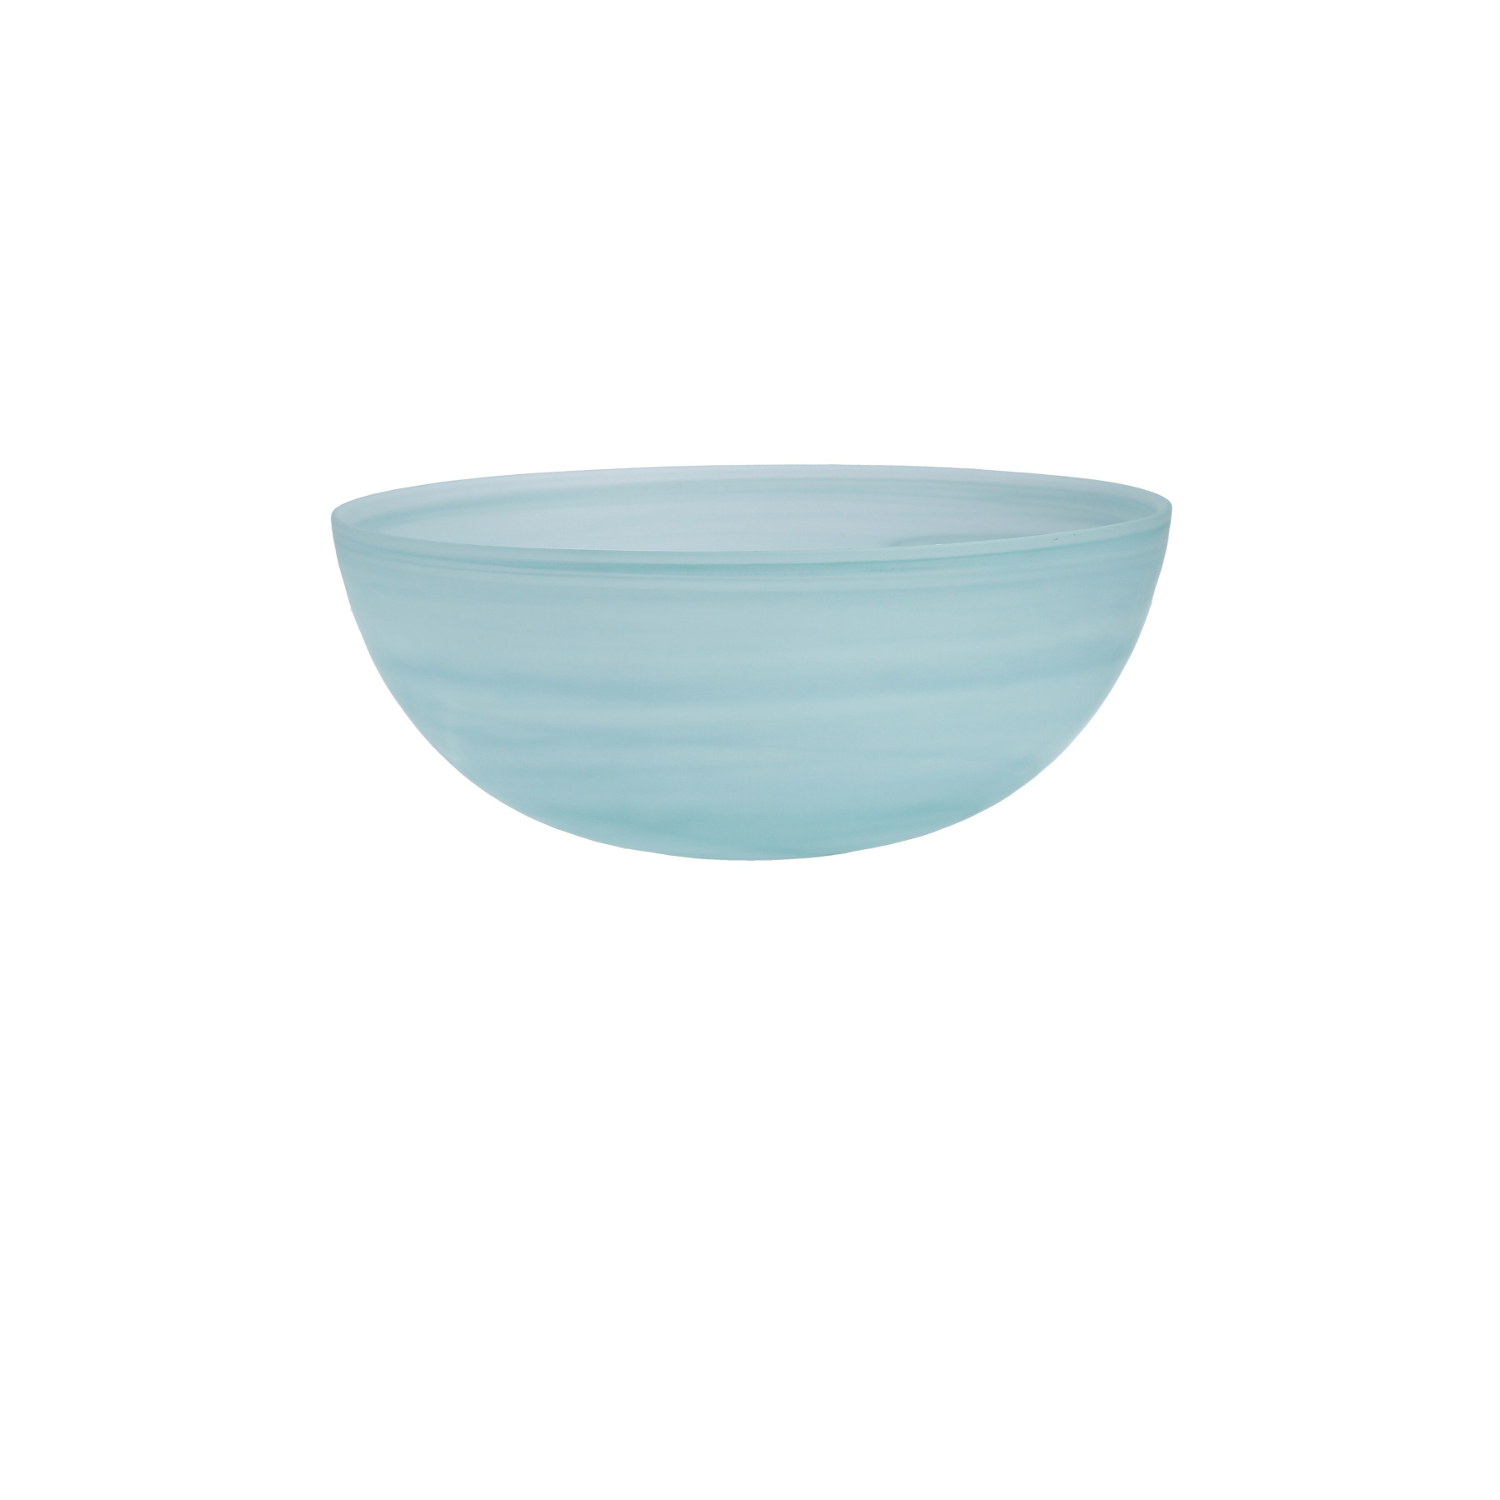 D&V La Jolla Sage Green Glass Large Salad Bowl